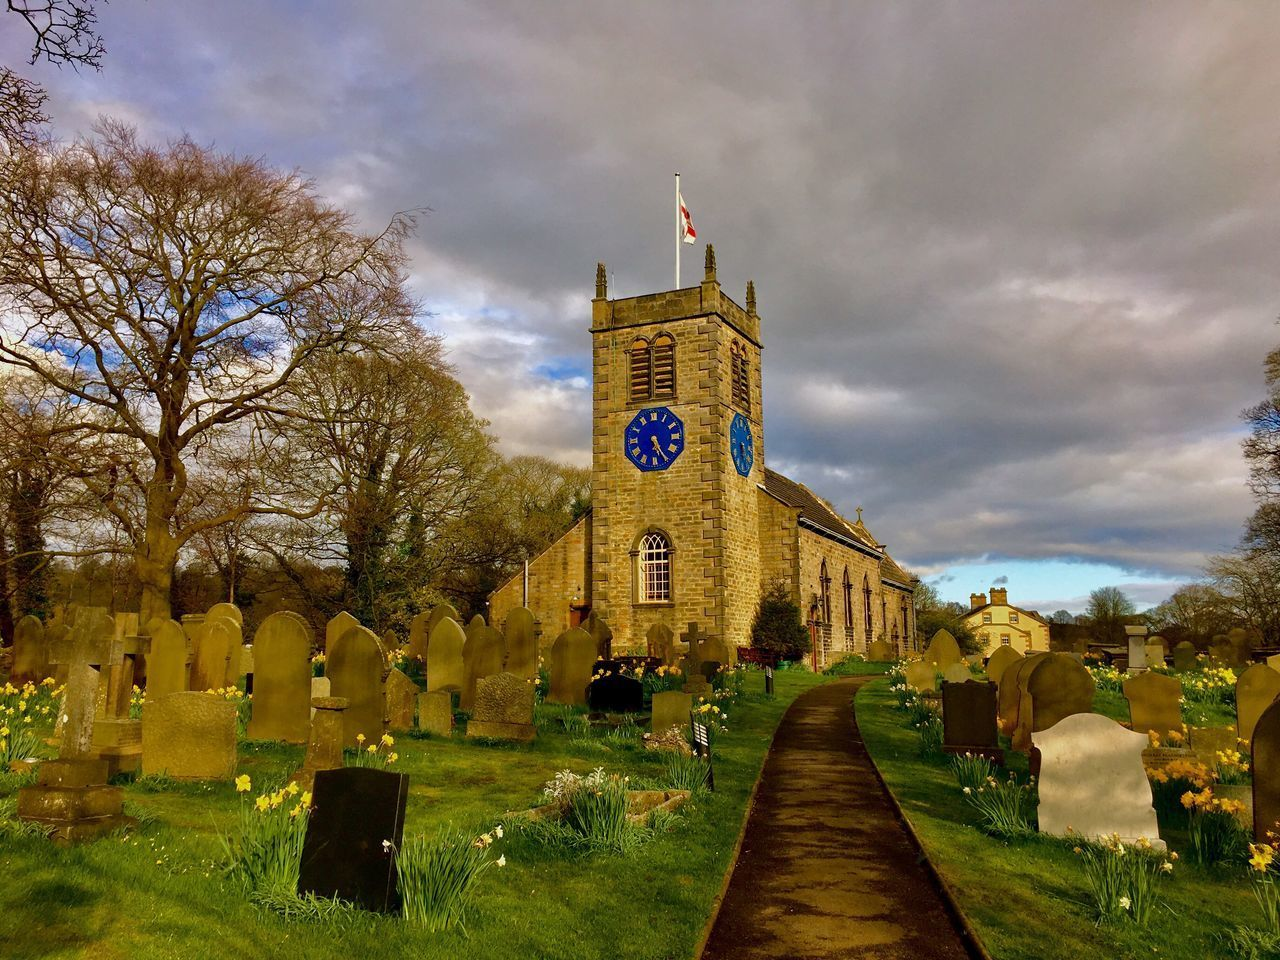 Beautiful blue clock - St. Peter's church, Addingham Grass Architecture Tree Sky Outdoors Built Structure No People Nature Day Clock Tower Addingham Blue Clock Church Springtime Sunlight The Great Outdoors - 2017 EyeEm Awards The Architect - 2017 EyeEm Awards BYOPaper!